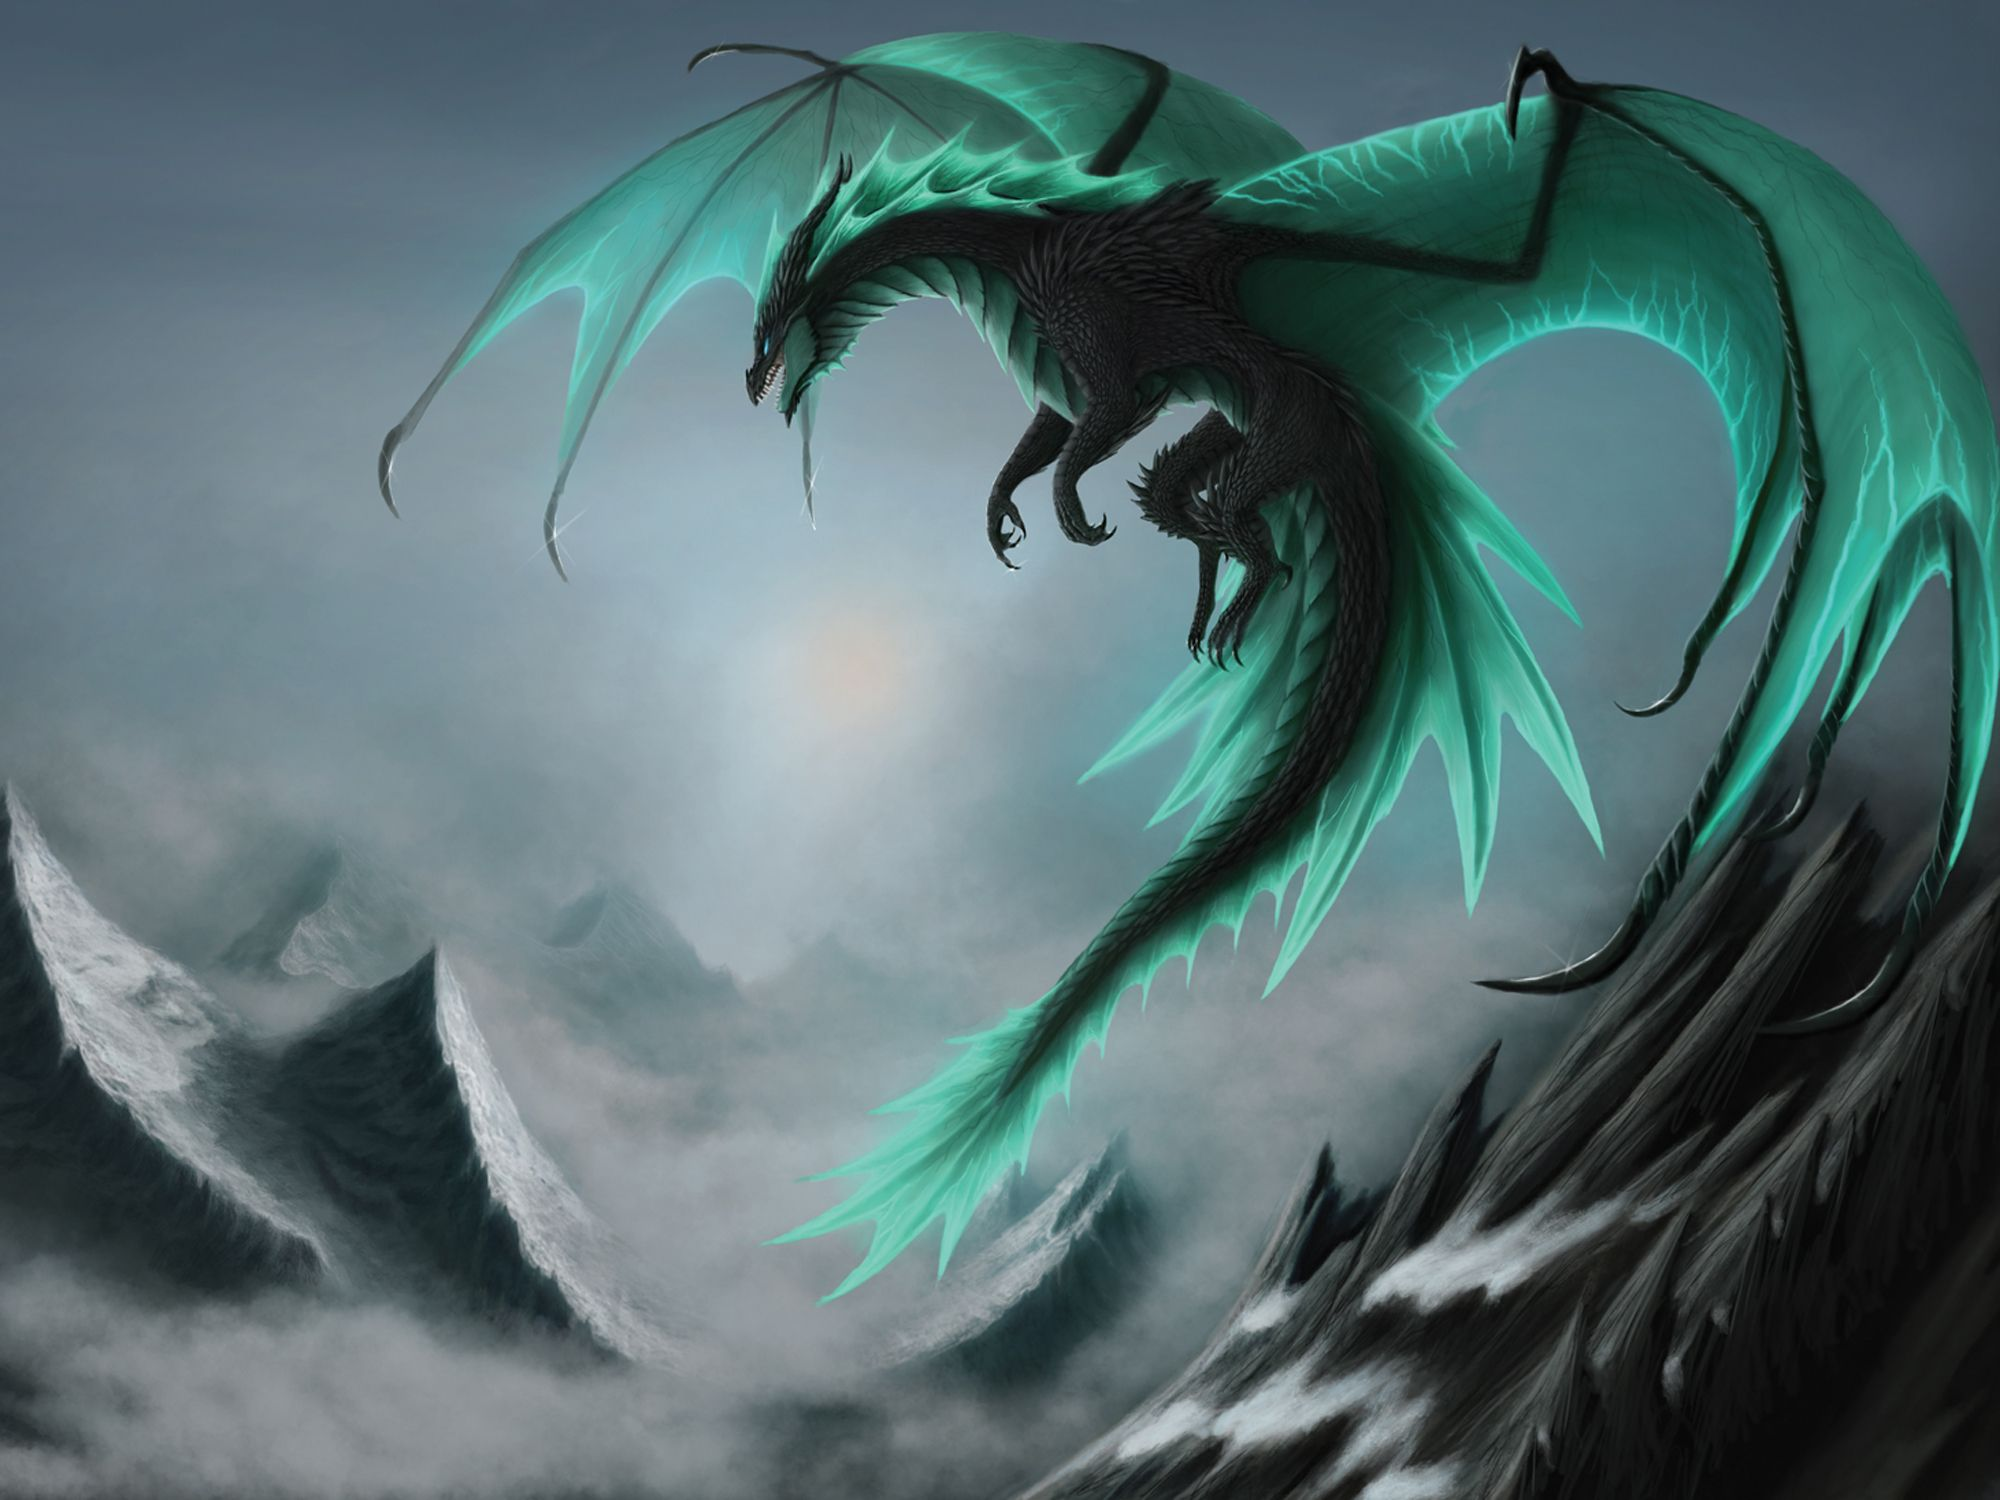 Teal Dragons Wallpapers Top Free Teal Dragons Backgrounds